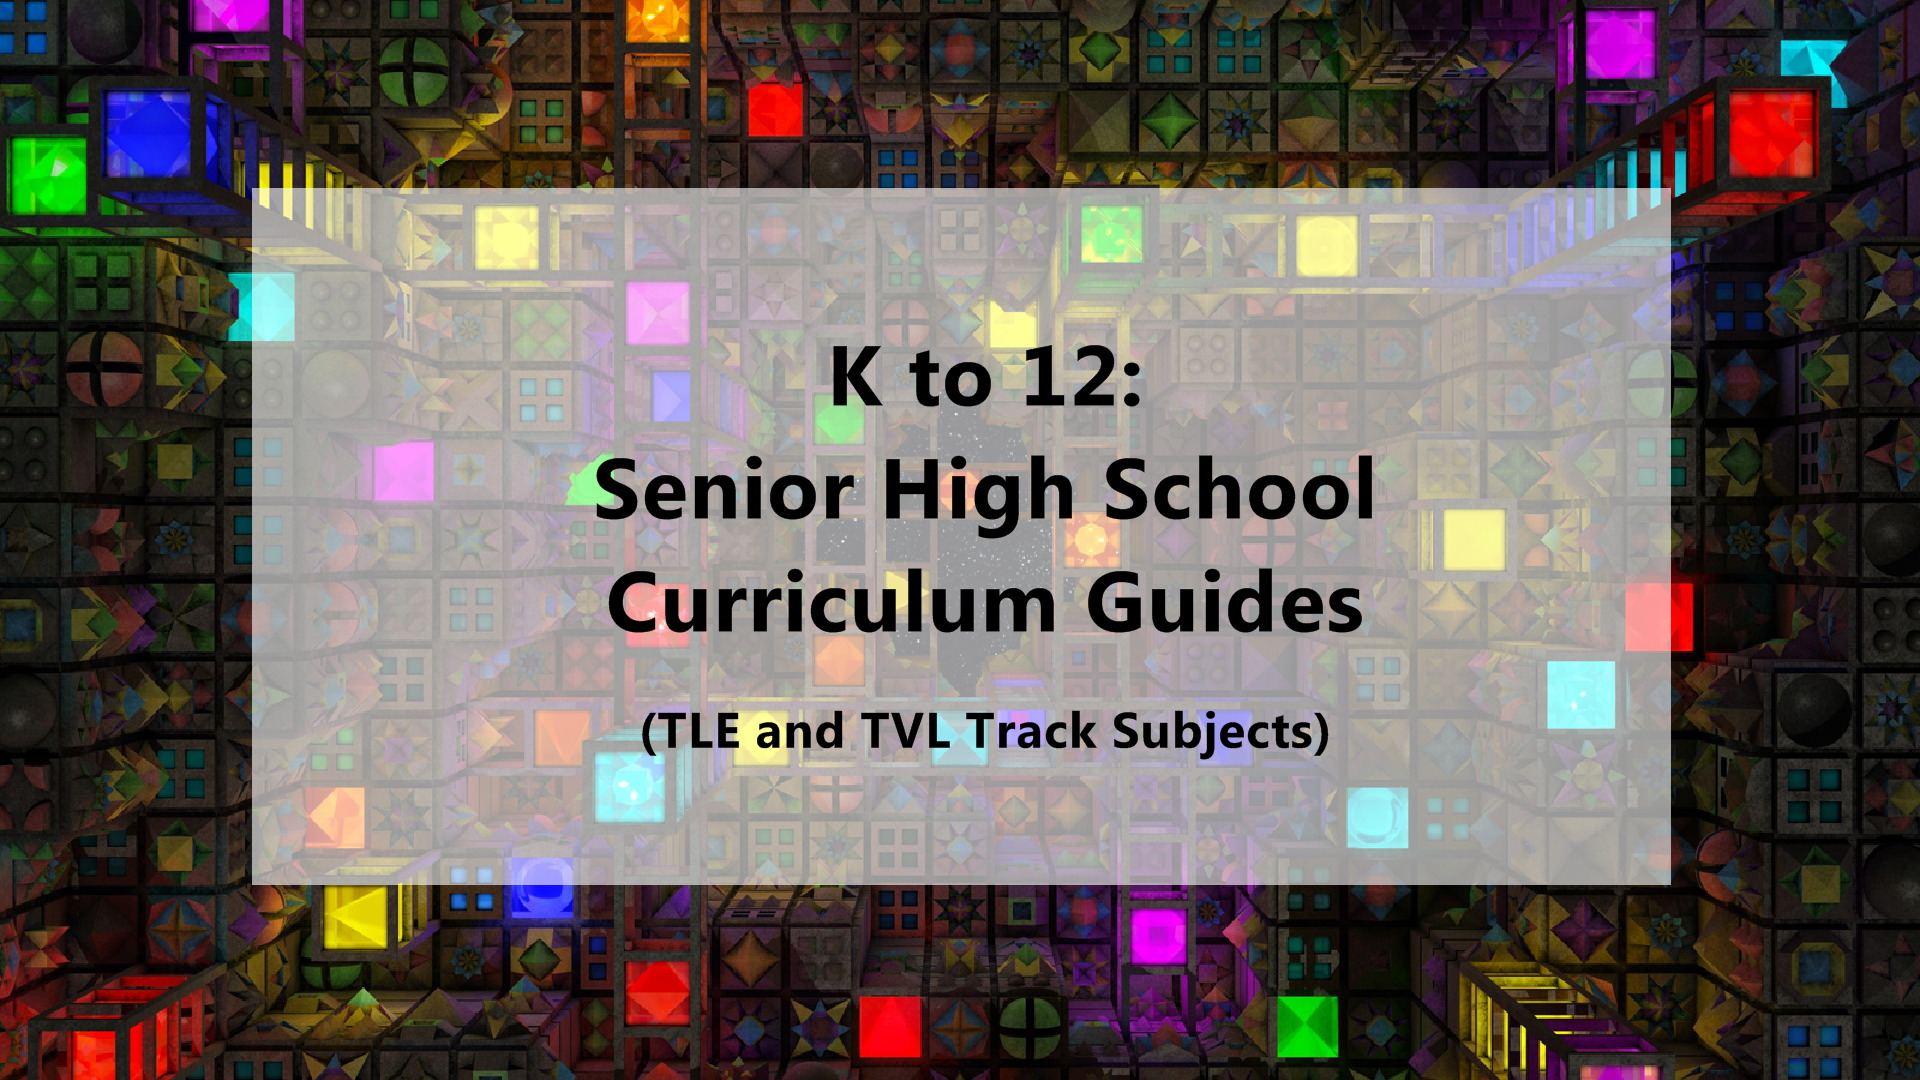 K to 12: Senior High School TLE and TVL Track Curriculum